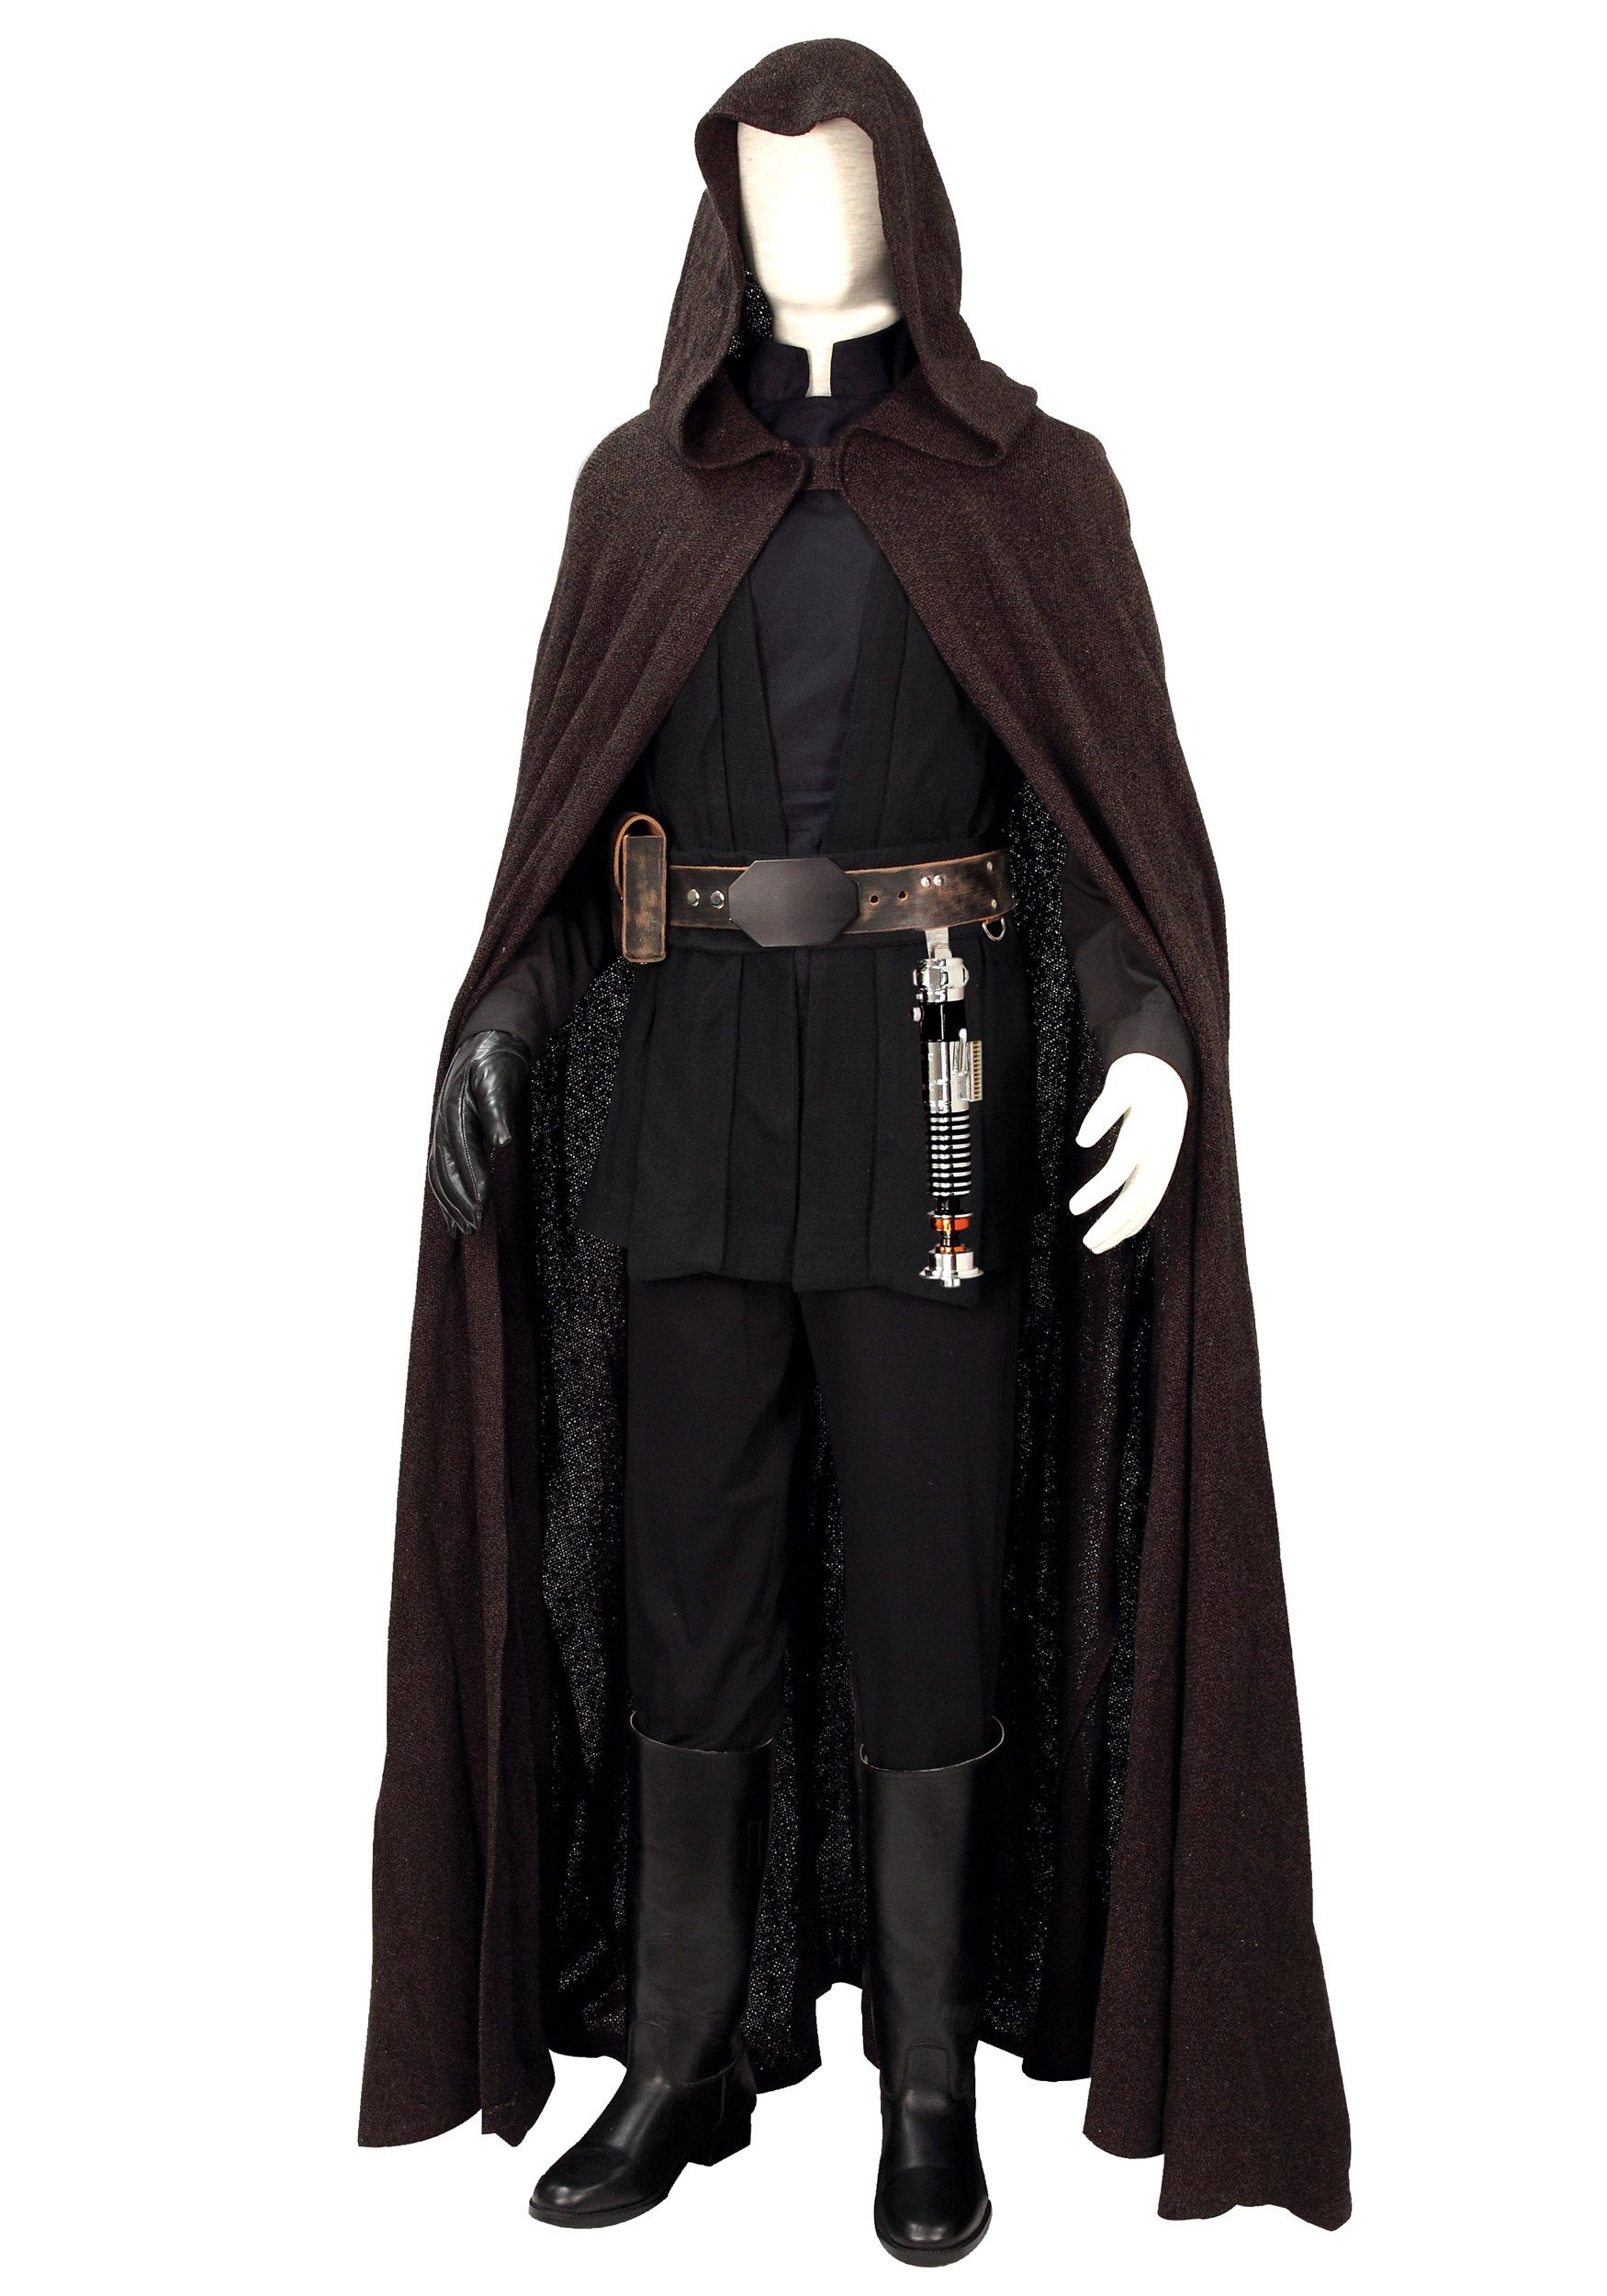 64eebf19a1 luke skywalker return of the jedi costume - Google Search